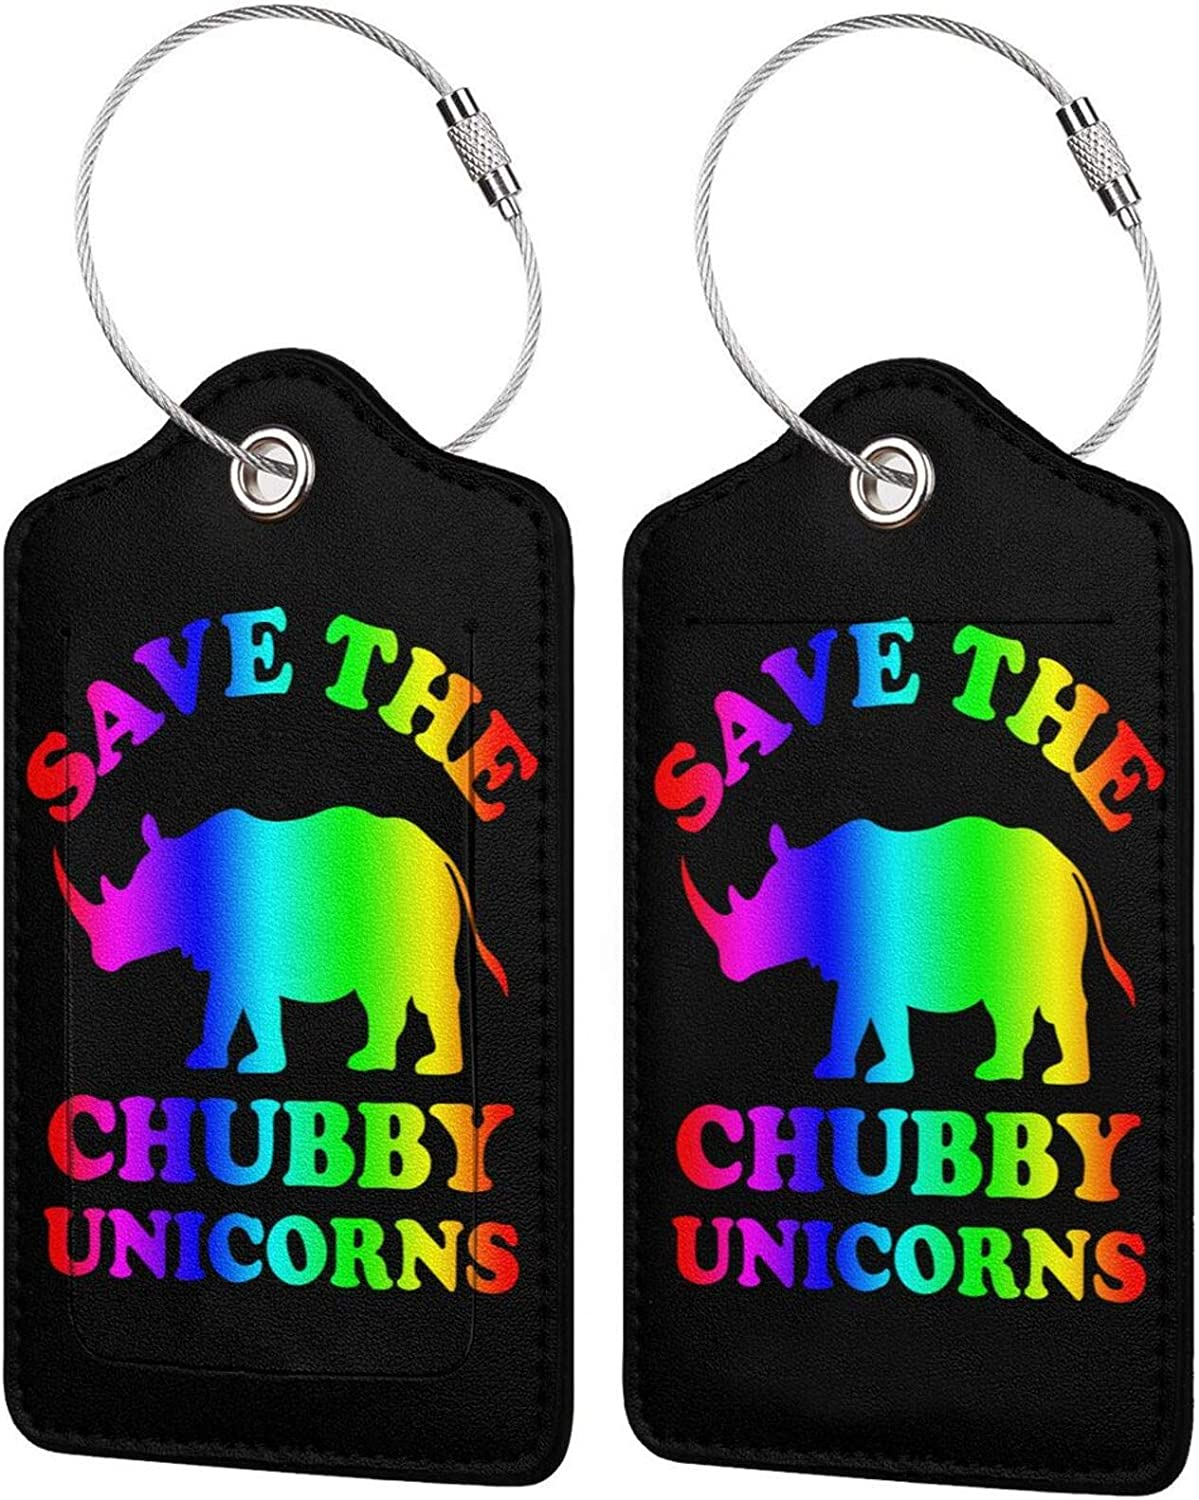 Spring new work Save The Chubby Unicorns Max 78% OFF PU Leather Rec Baggage Luggage Bag Tags